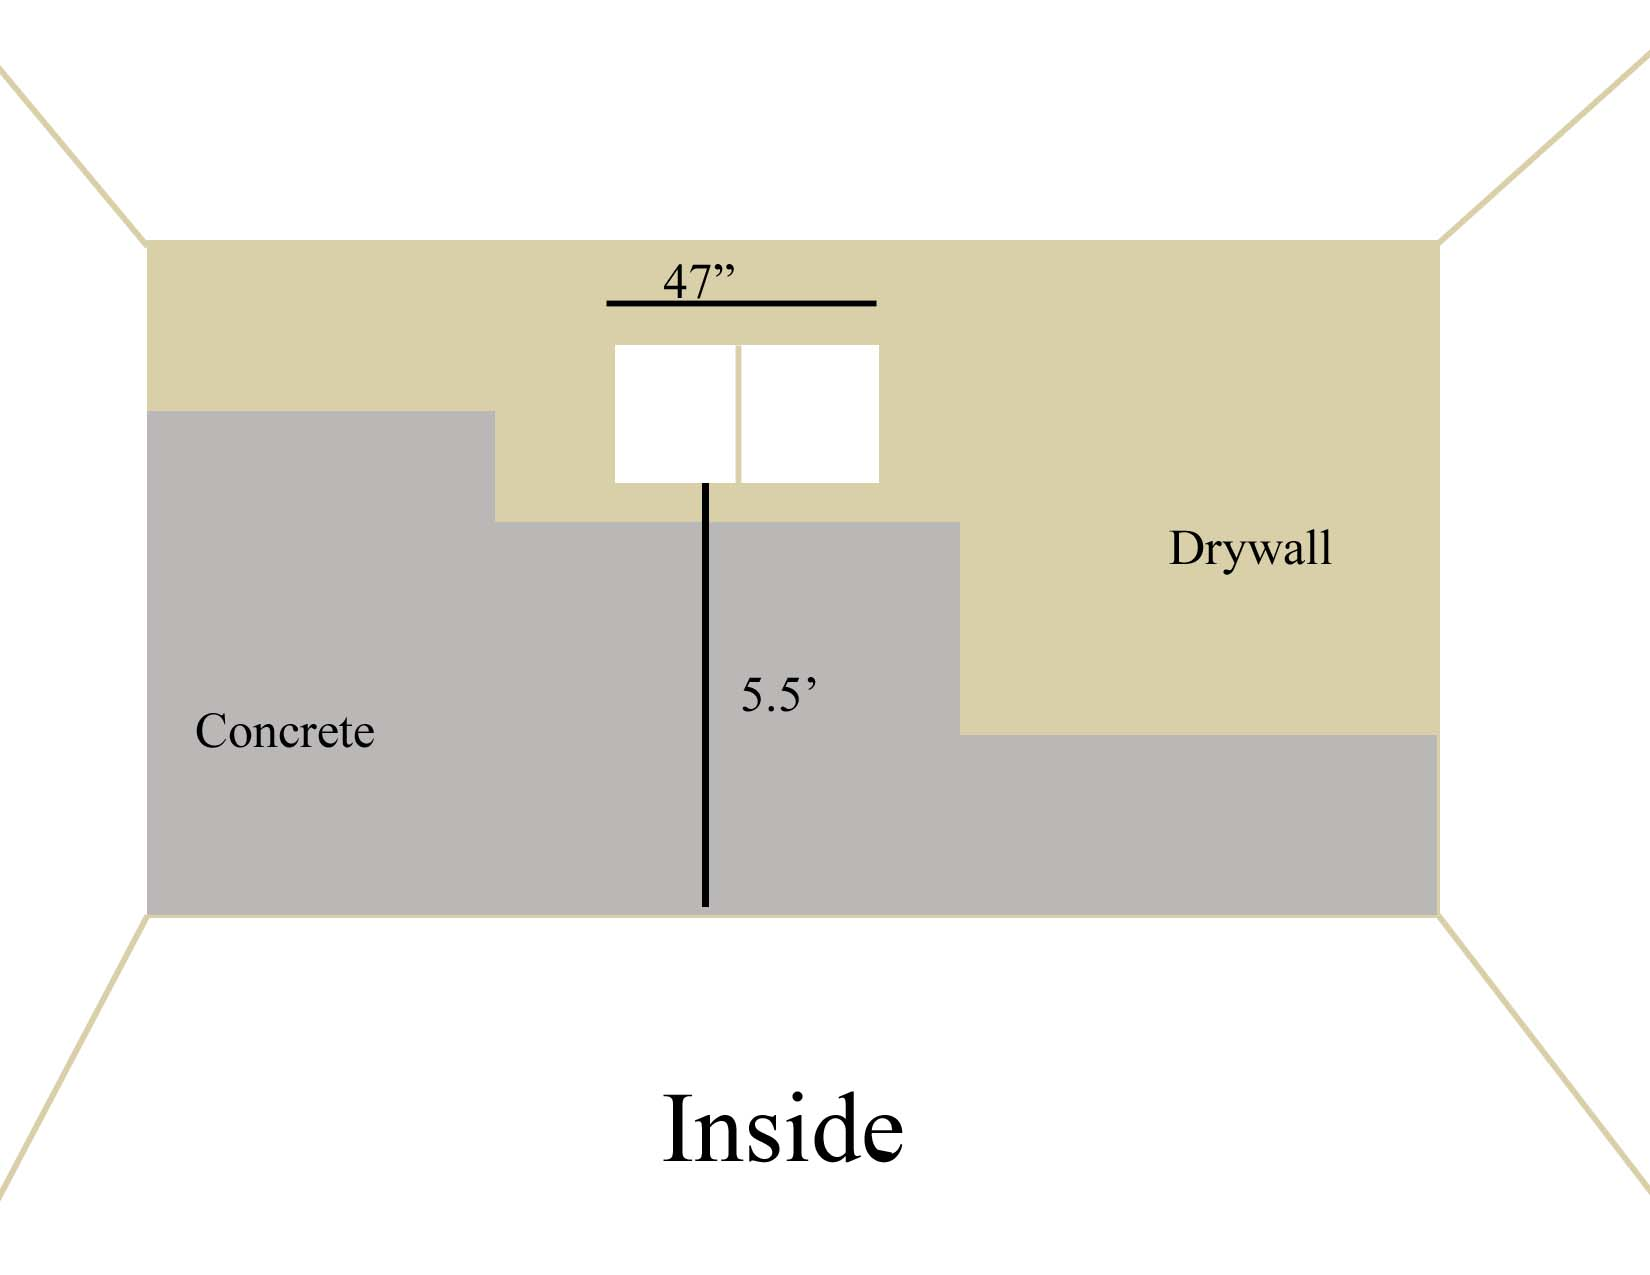 Cutting concrete foundation for door, is it safe?-inside.jpg